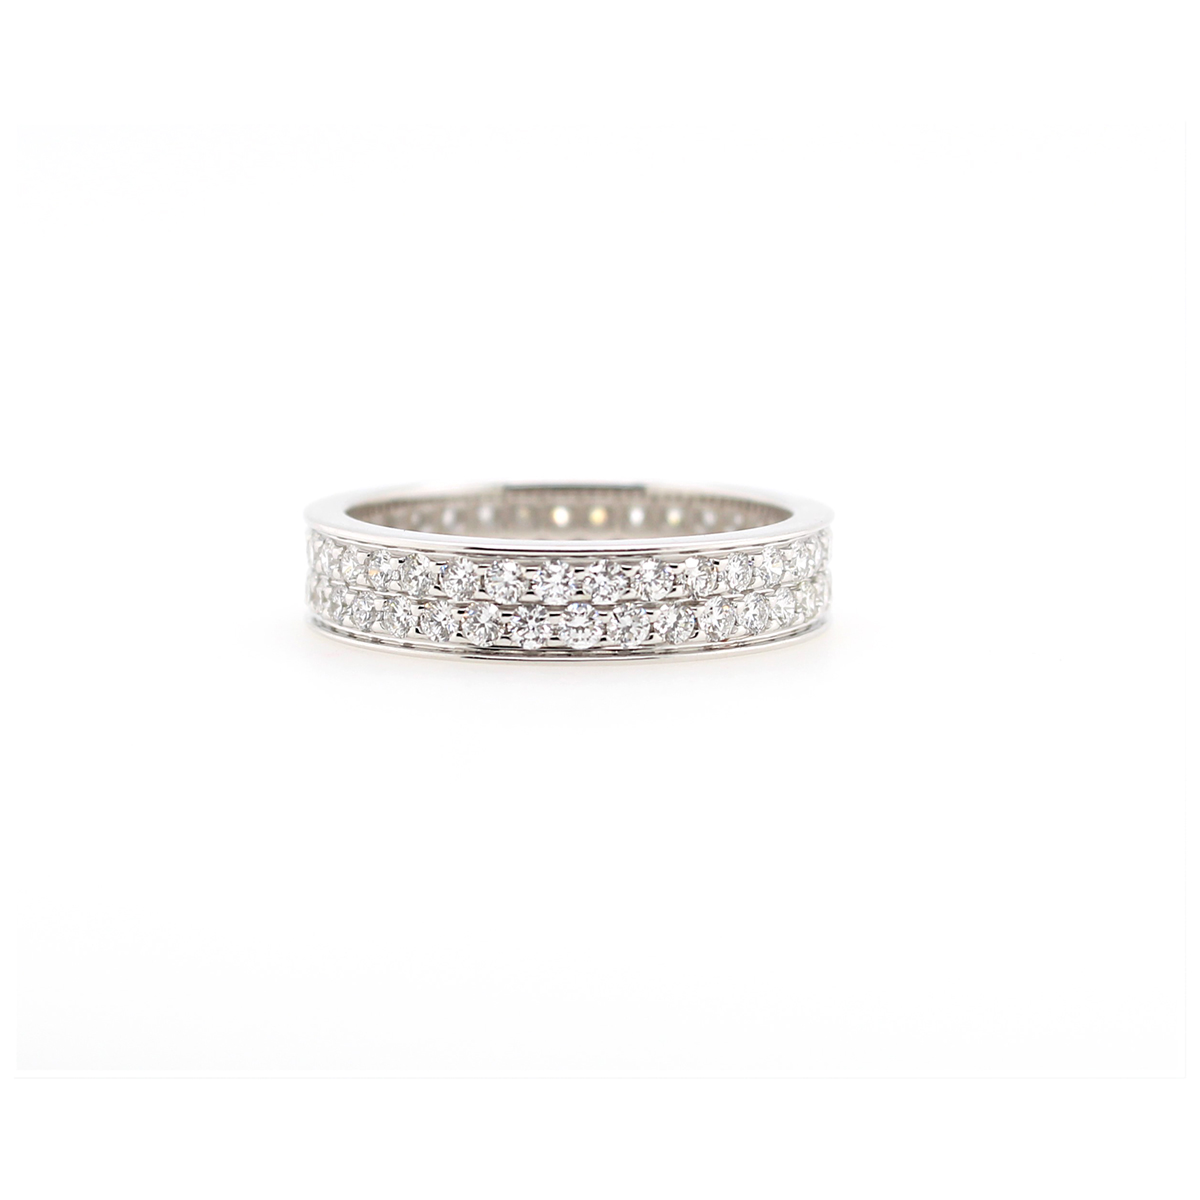 18 Karat White Gold Two Row Diamond Eternity Band